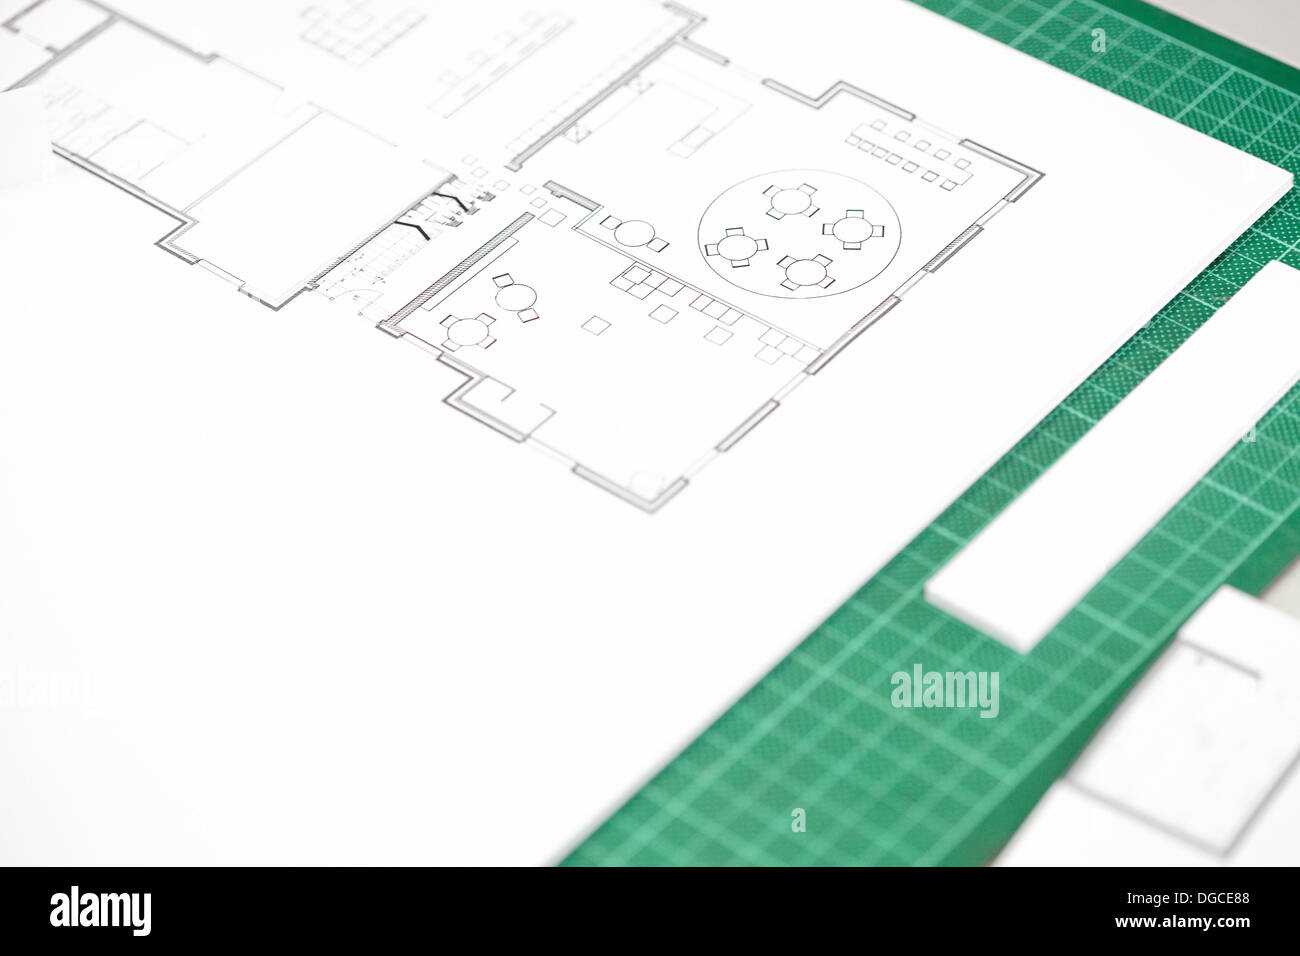 Close Up Of Interior Design Blueprint On Cutting Mat